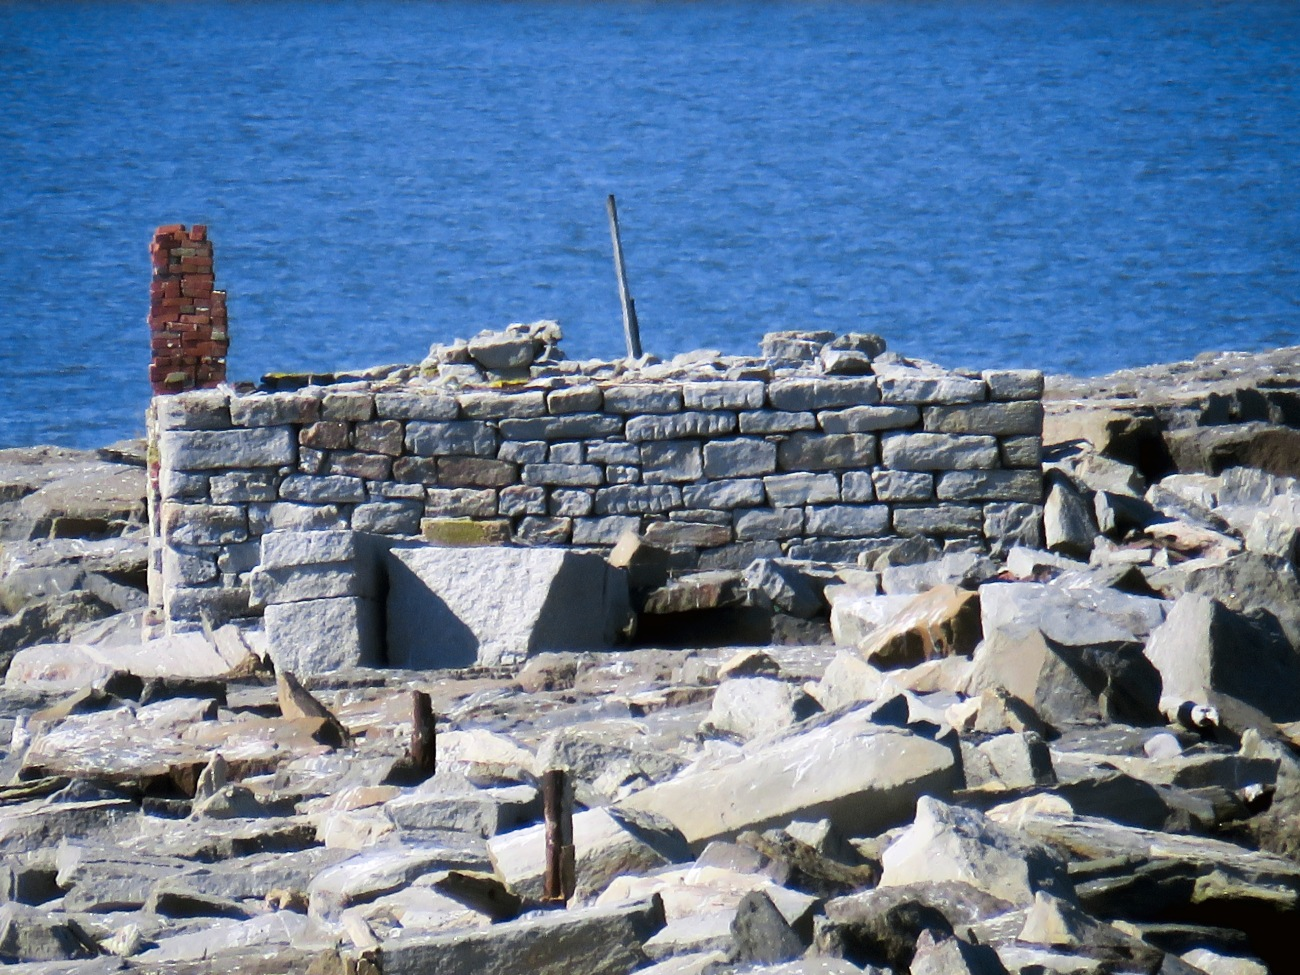 20171018_131625_Ruins of West End Lighthouse